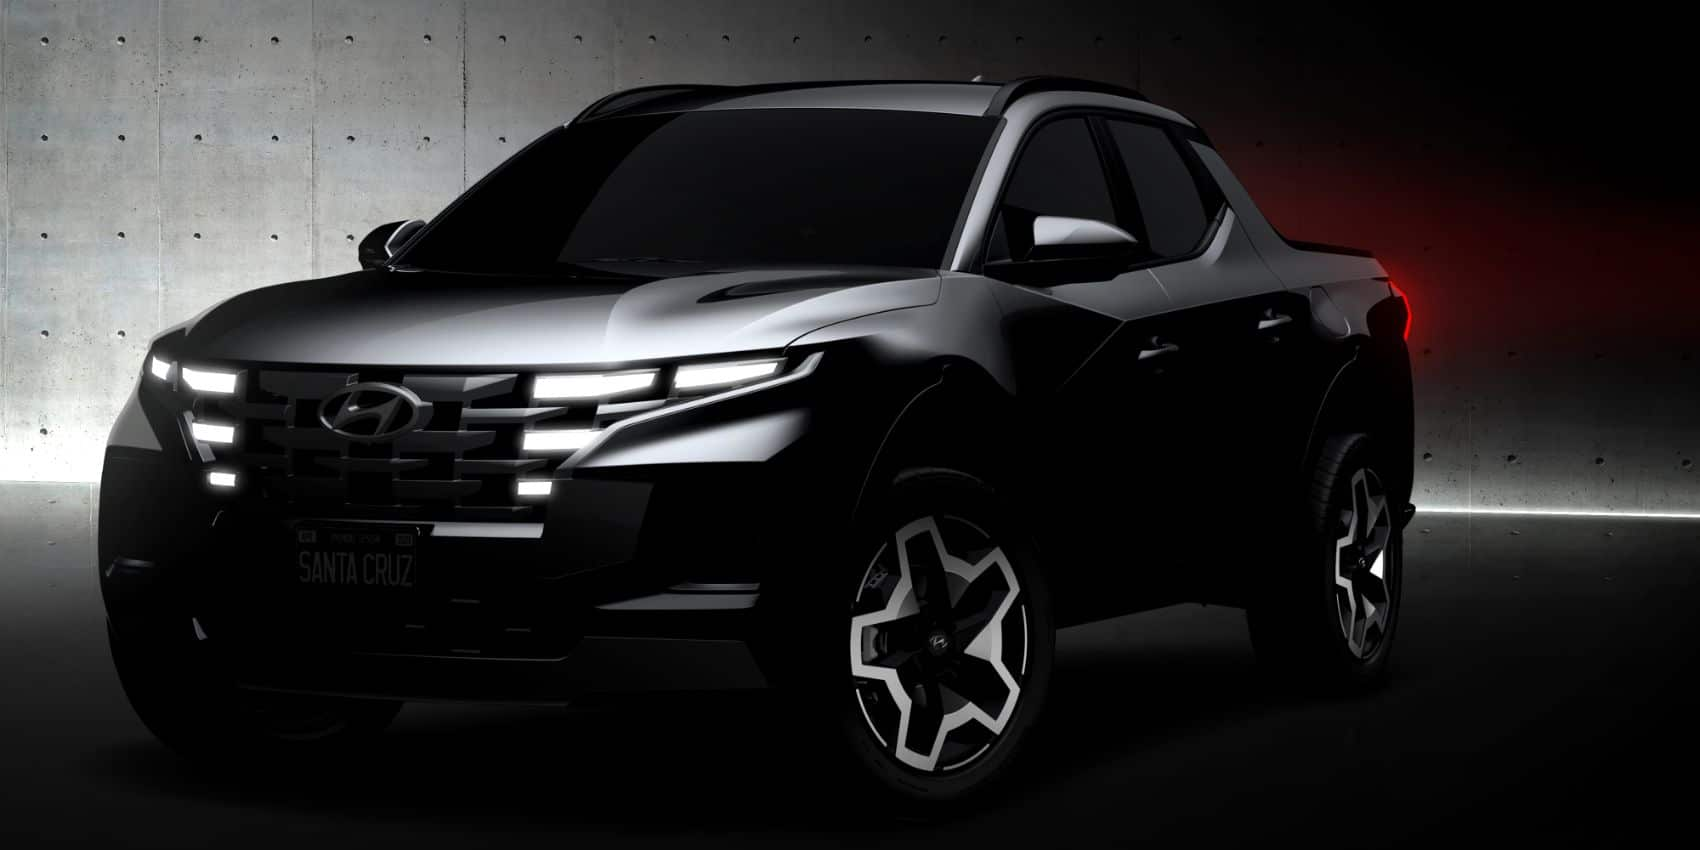 Hyundai Releases Santa Cruz Design Video & Teaser